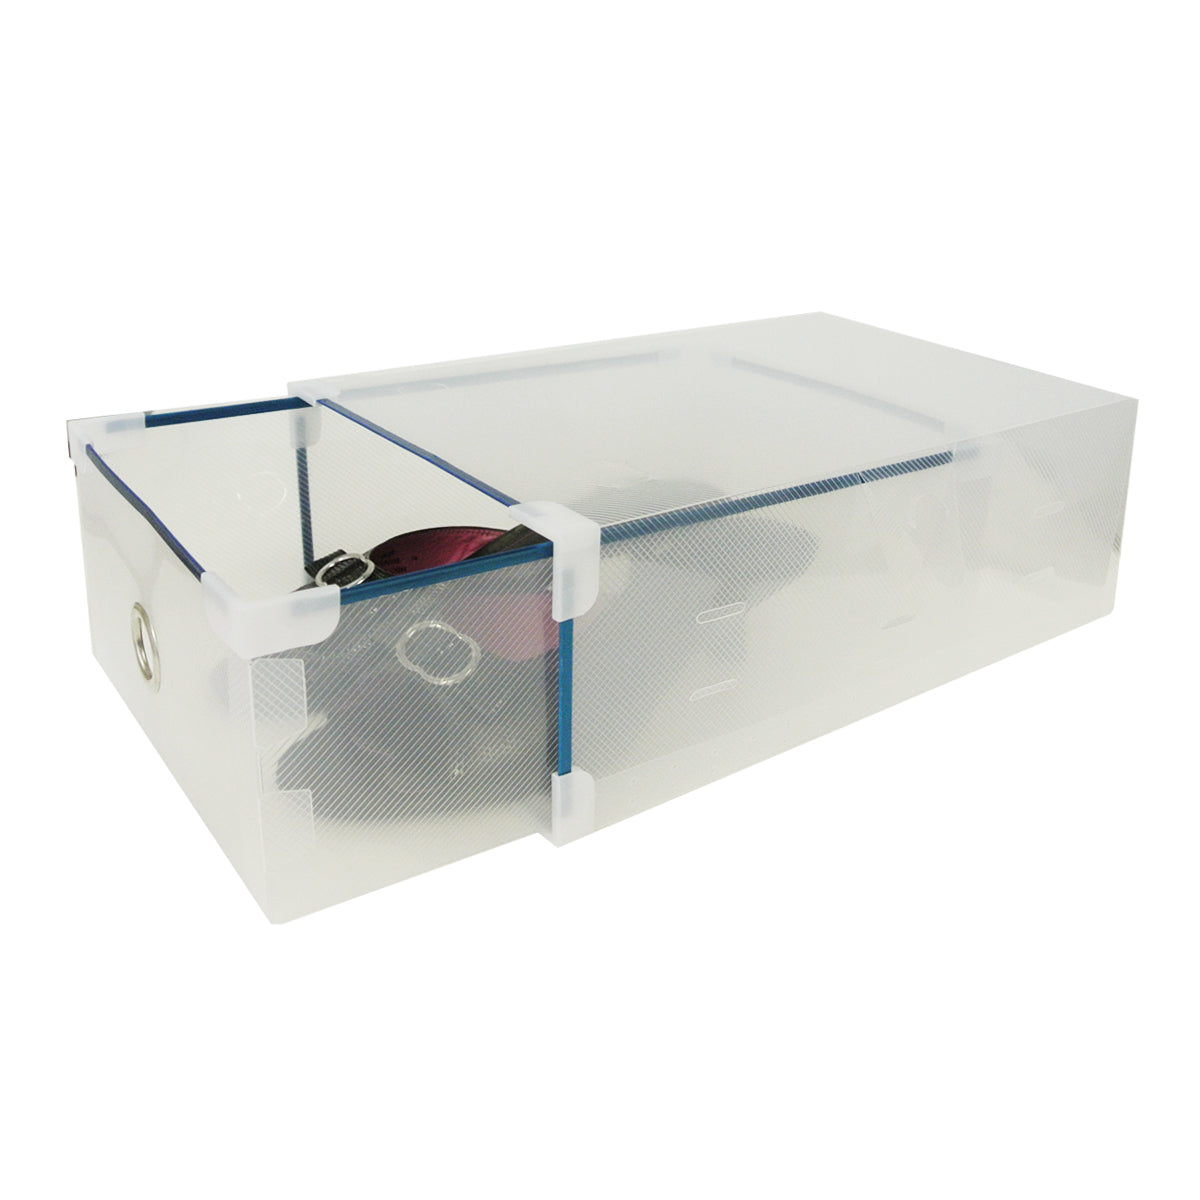 Set of 10 Clear Drawer Style Shoe Box for Closet Organization